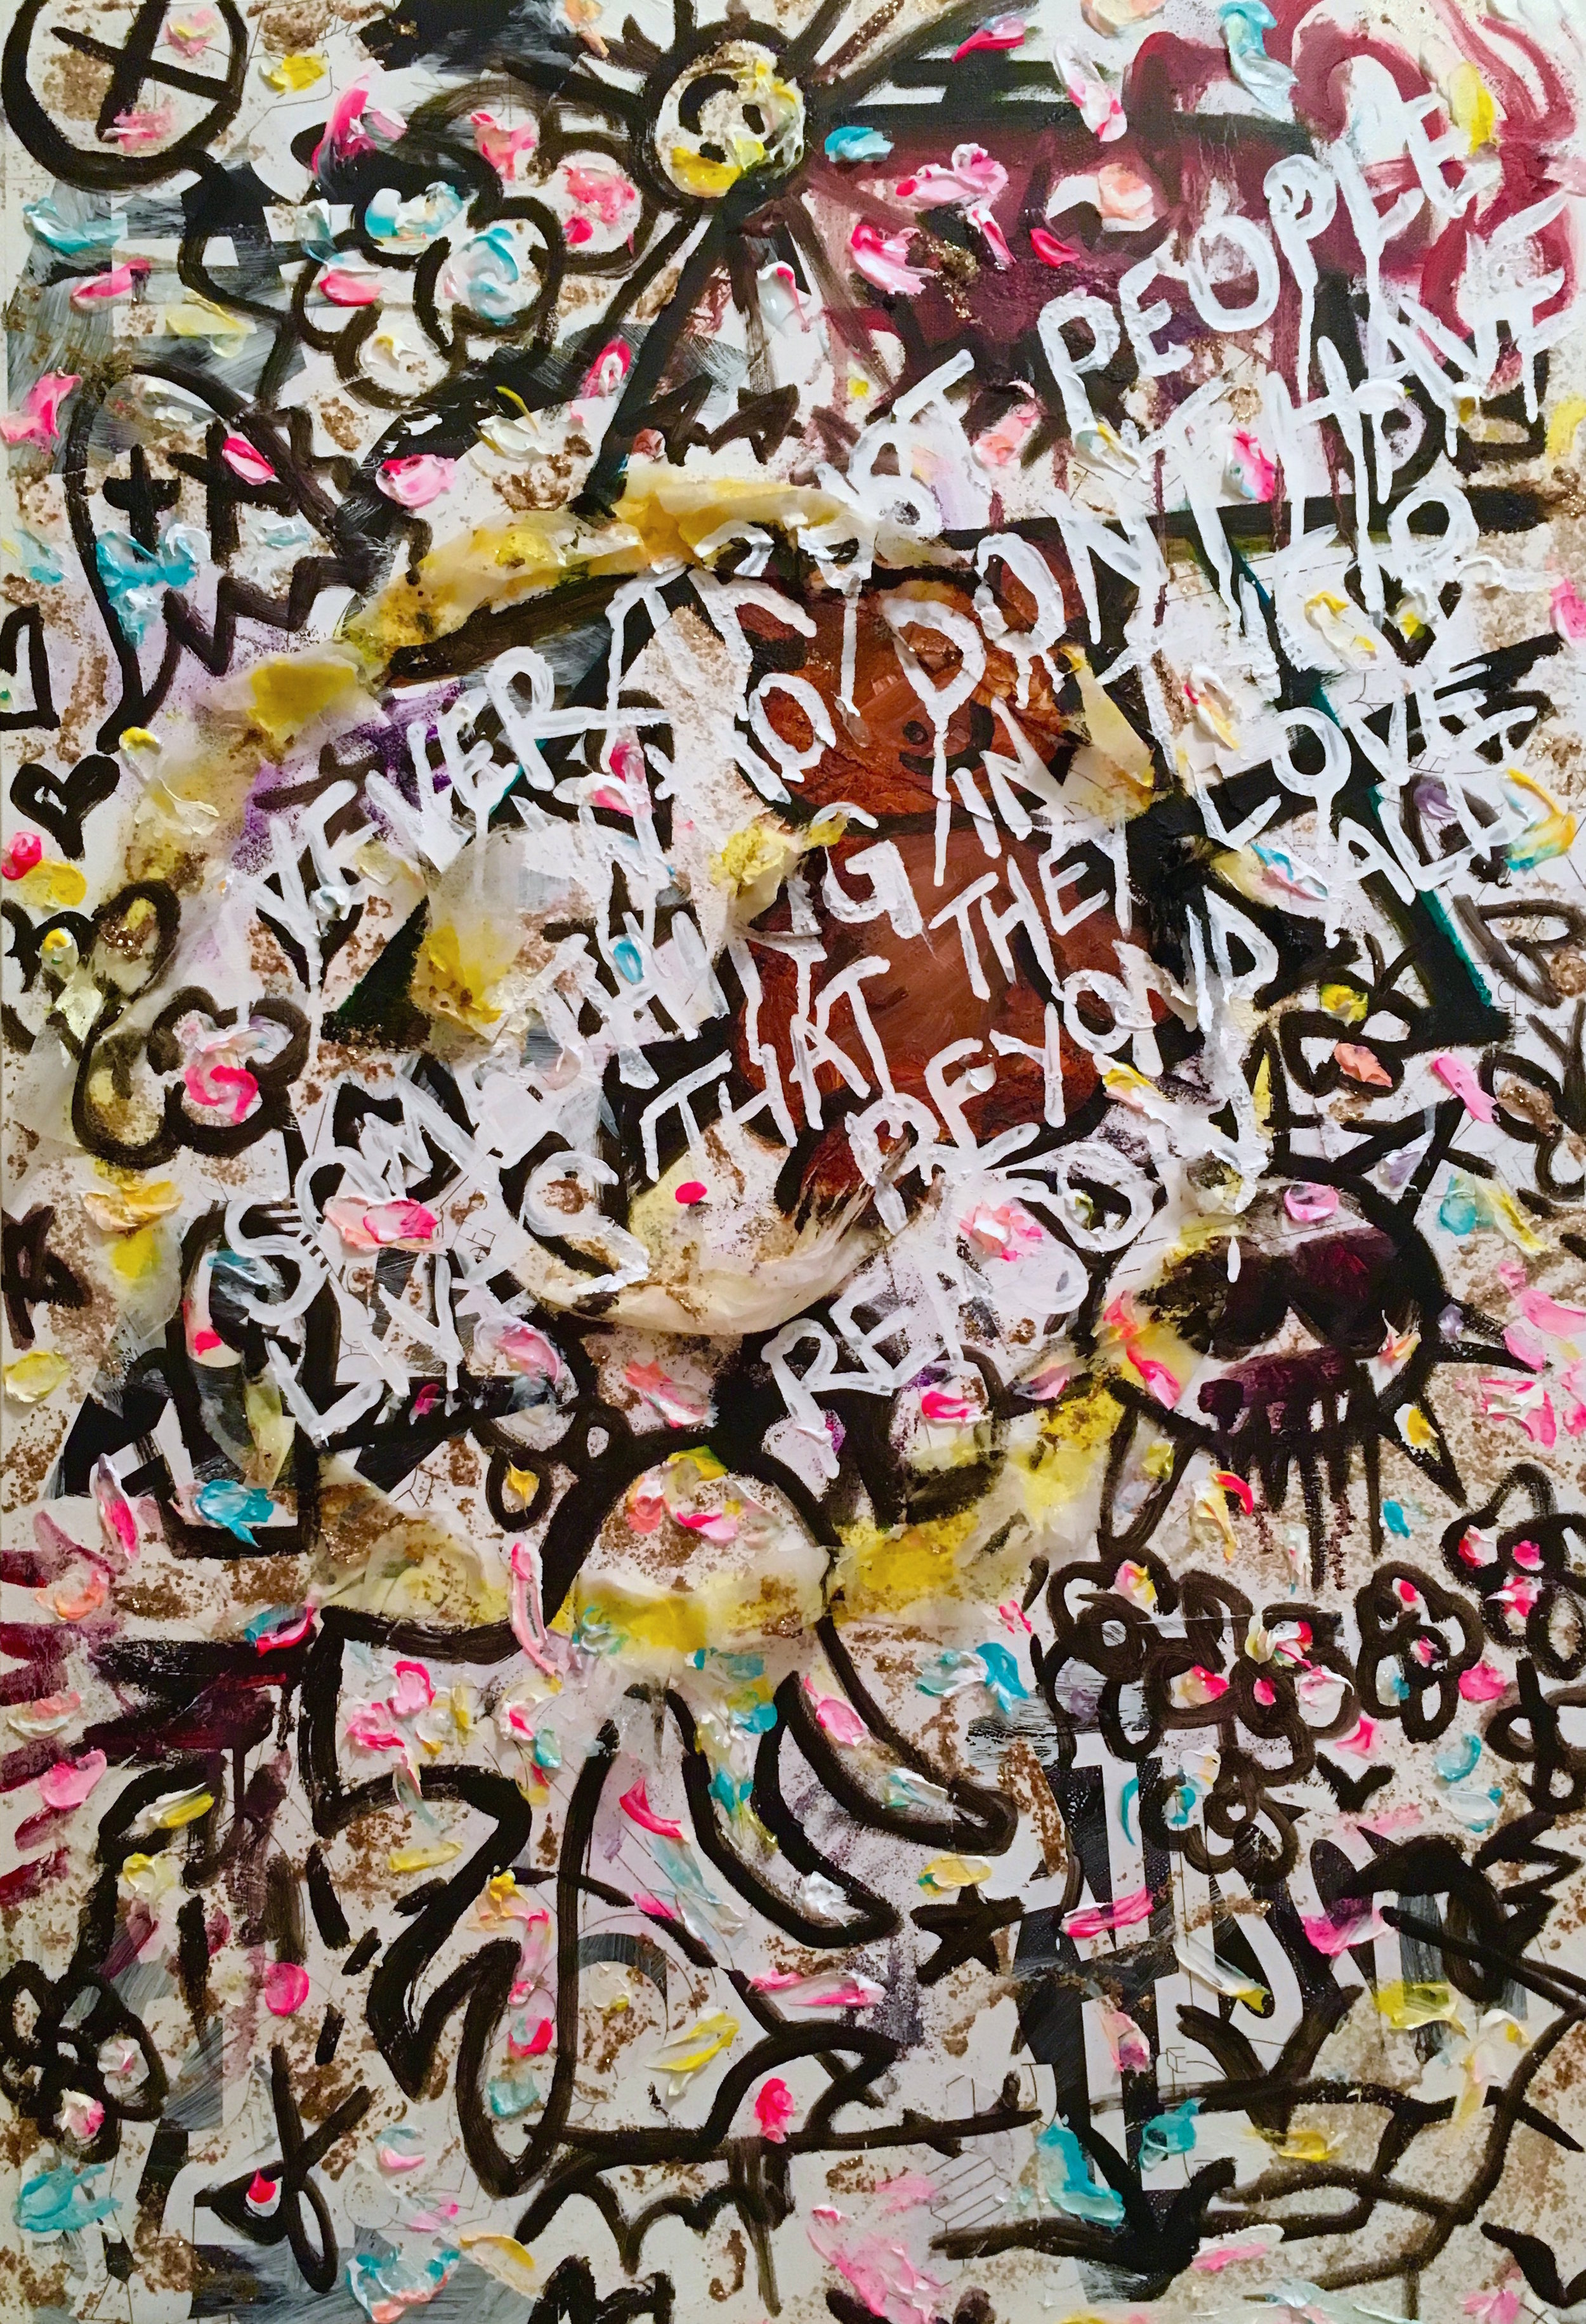 "Lethal Love. Coloring book pages, black lava medium, gold flake medium, dryer sheets, acrylic, and oil on canvas. ""Never trust people who don't have something in their lives that they love beyond all reason.""  My dad used to draw coloring books for me when he couldn't afford to buy them. For those of us who used to color aimlessly, as children of immigrants, wasn't it a privilege?  In Fredrik Backman's  Beartown , seeking justice for an irreparable tragedy is met with resistance for the sake of protecting the trajectory of a town—and a boy—poised for greatness.   What else will be done—no, what else will we do, how far will we go in the name of love (for country, for god, for blood, for power, for life)?"